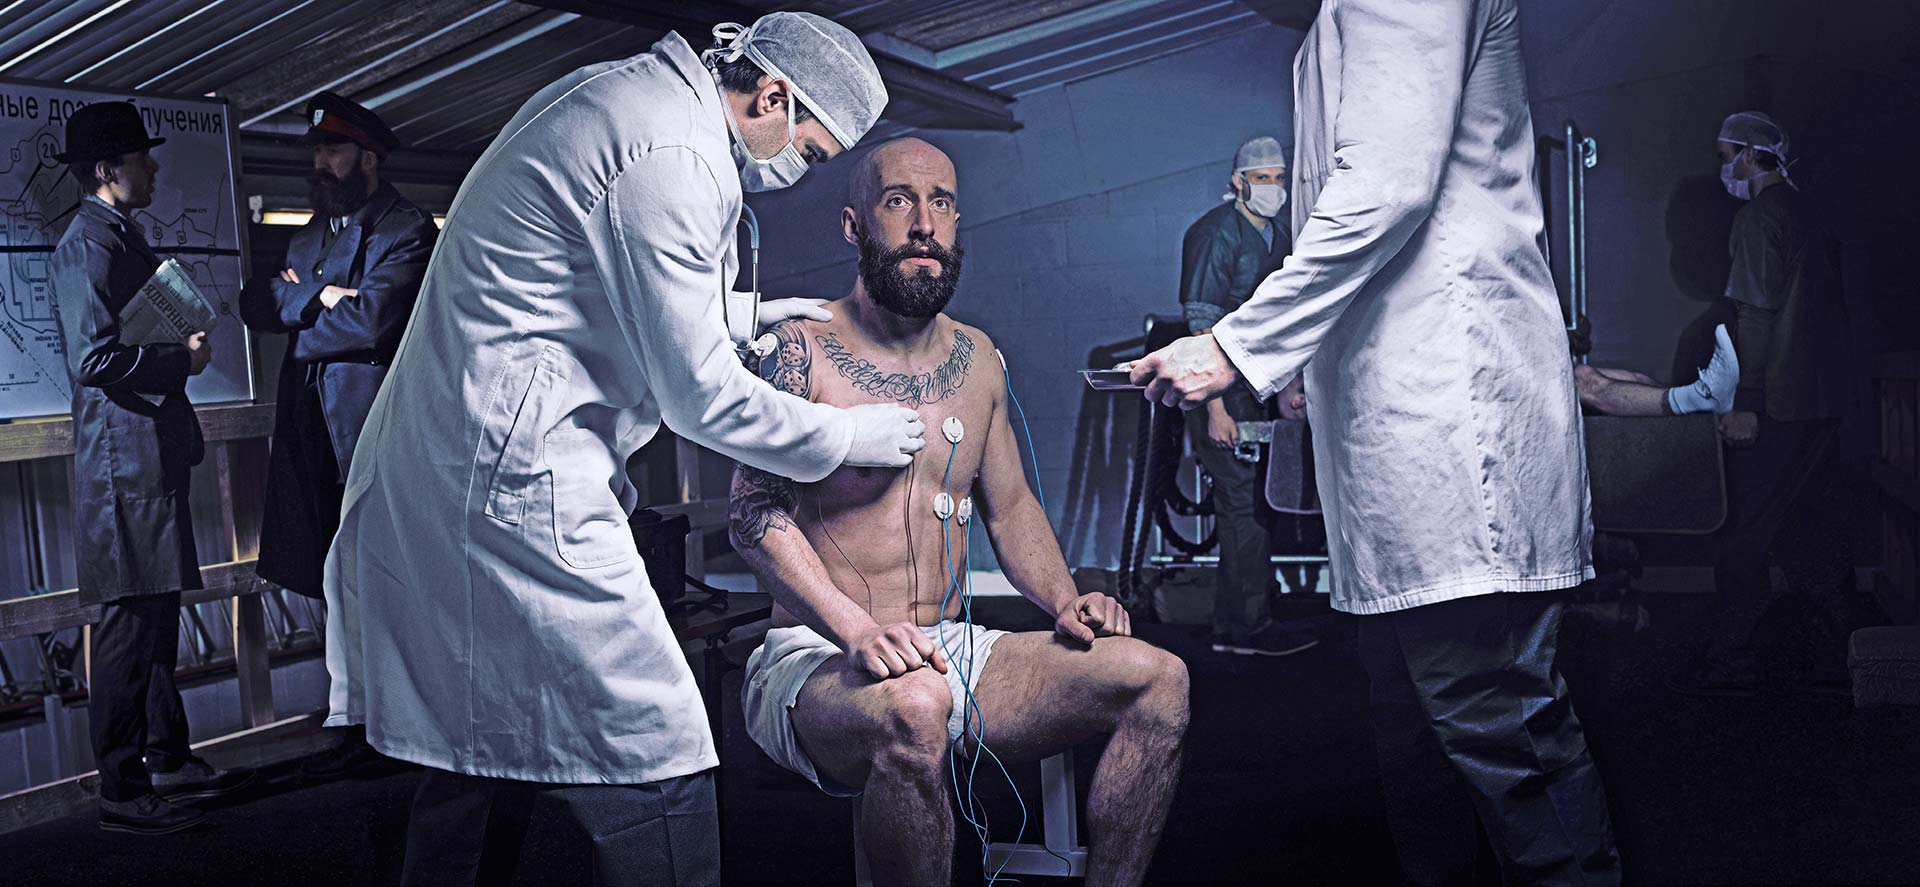 Shirtless bearded man has medical instruments attached to him while doctors and military figures are seen suspiciously in the backgound.